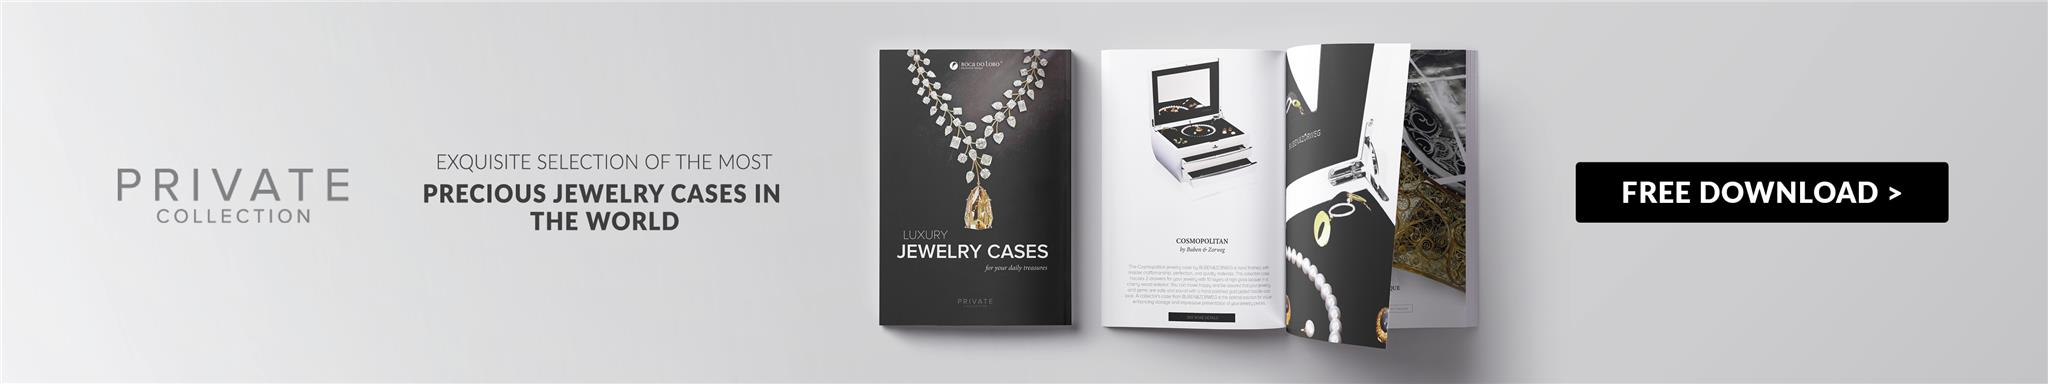 Jewelry Cases Ebook Boca do Lobo oscars 2020 Oscars 2020: Rolex Green Room & Swarovski-Embellished Stage precious jewelry cases in the world banner